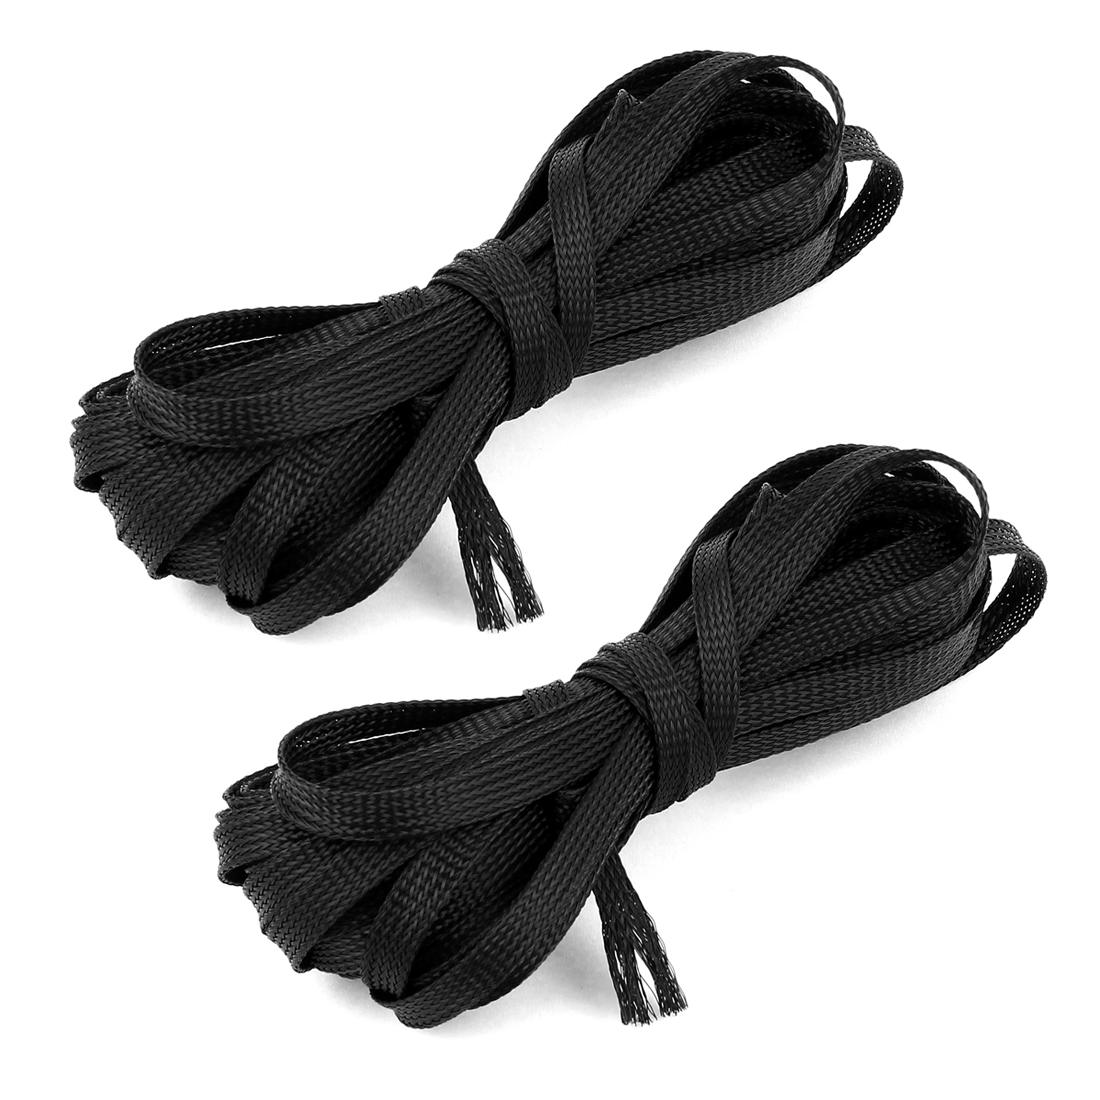 2pcs Black Nylon Expandable Braided Sleeving Wire Cord Cable Cover Protector 11M 36Ft Length